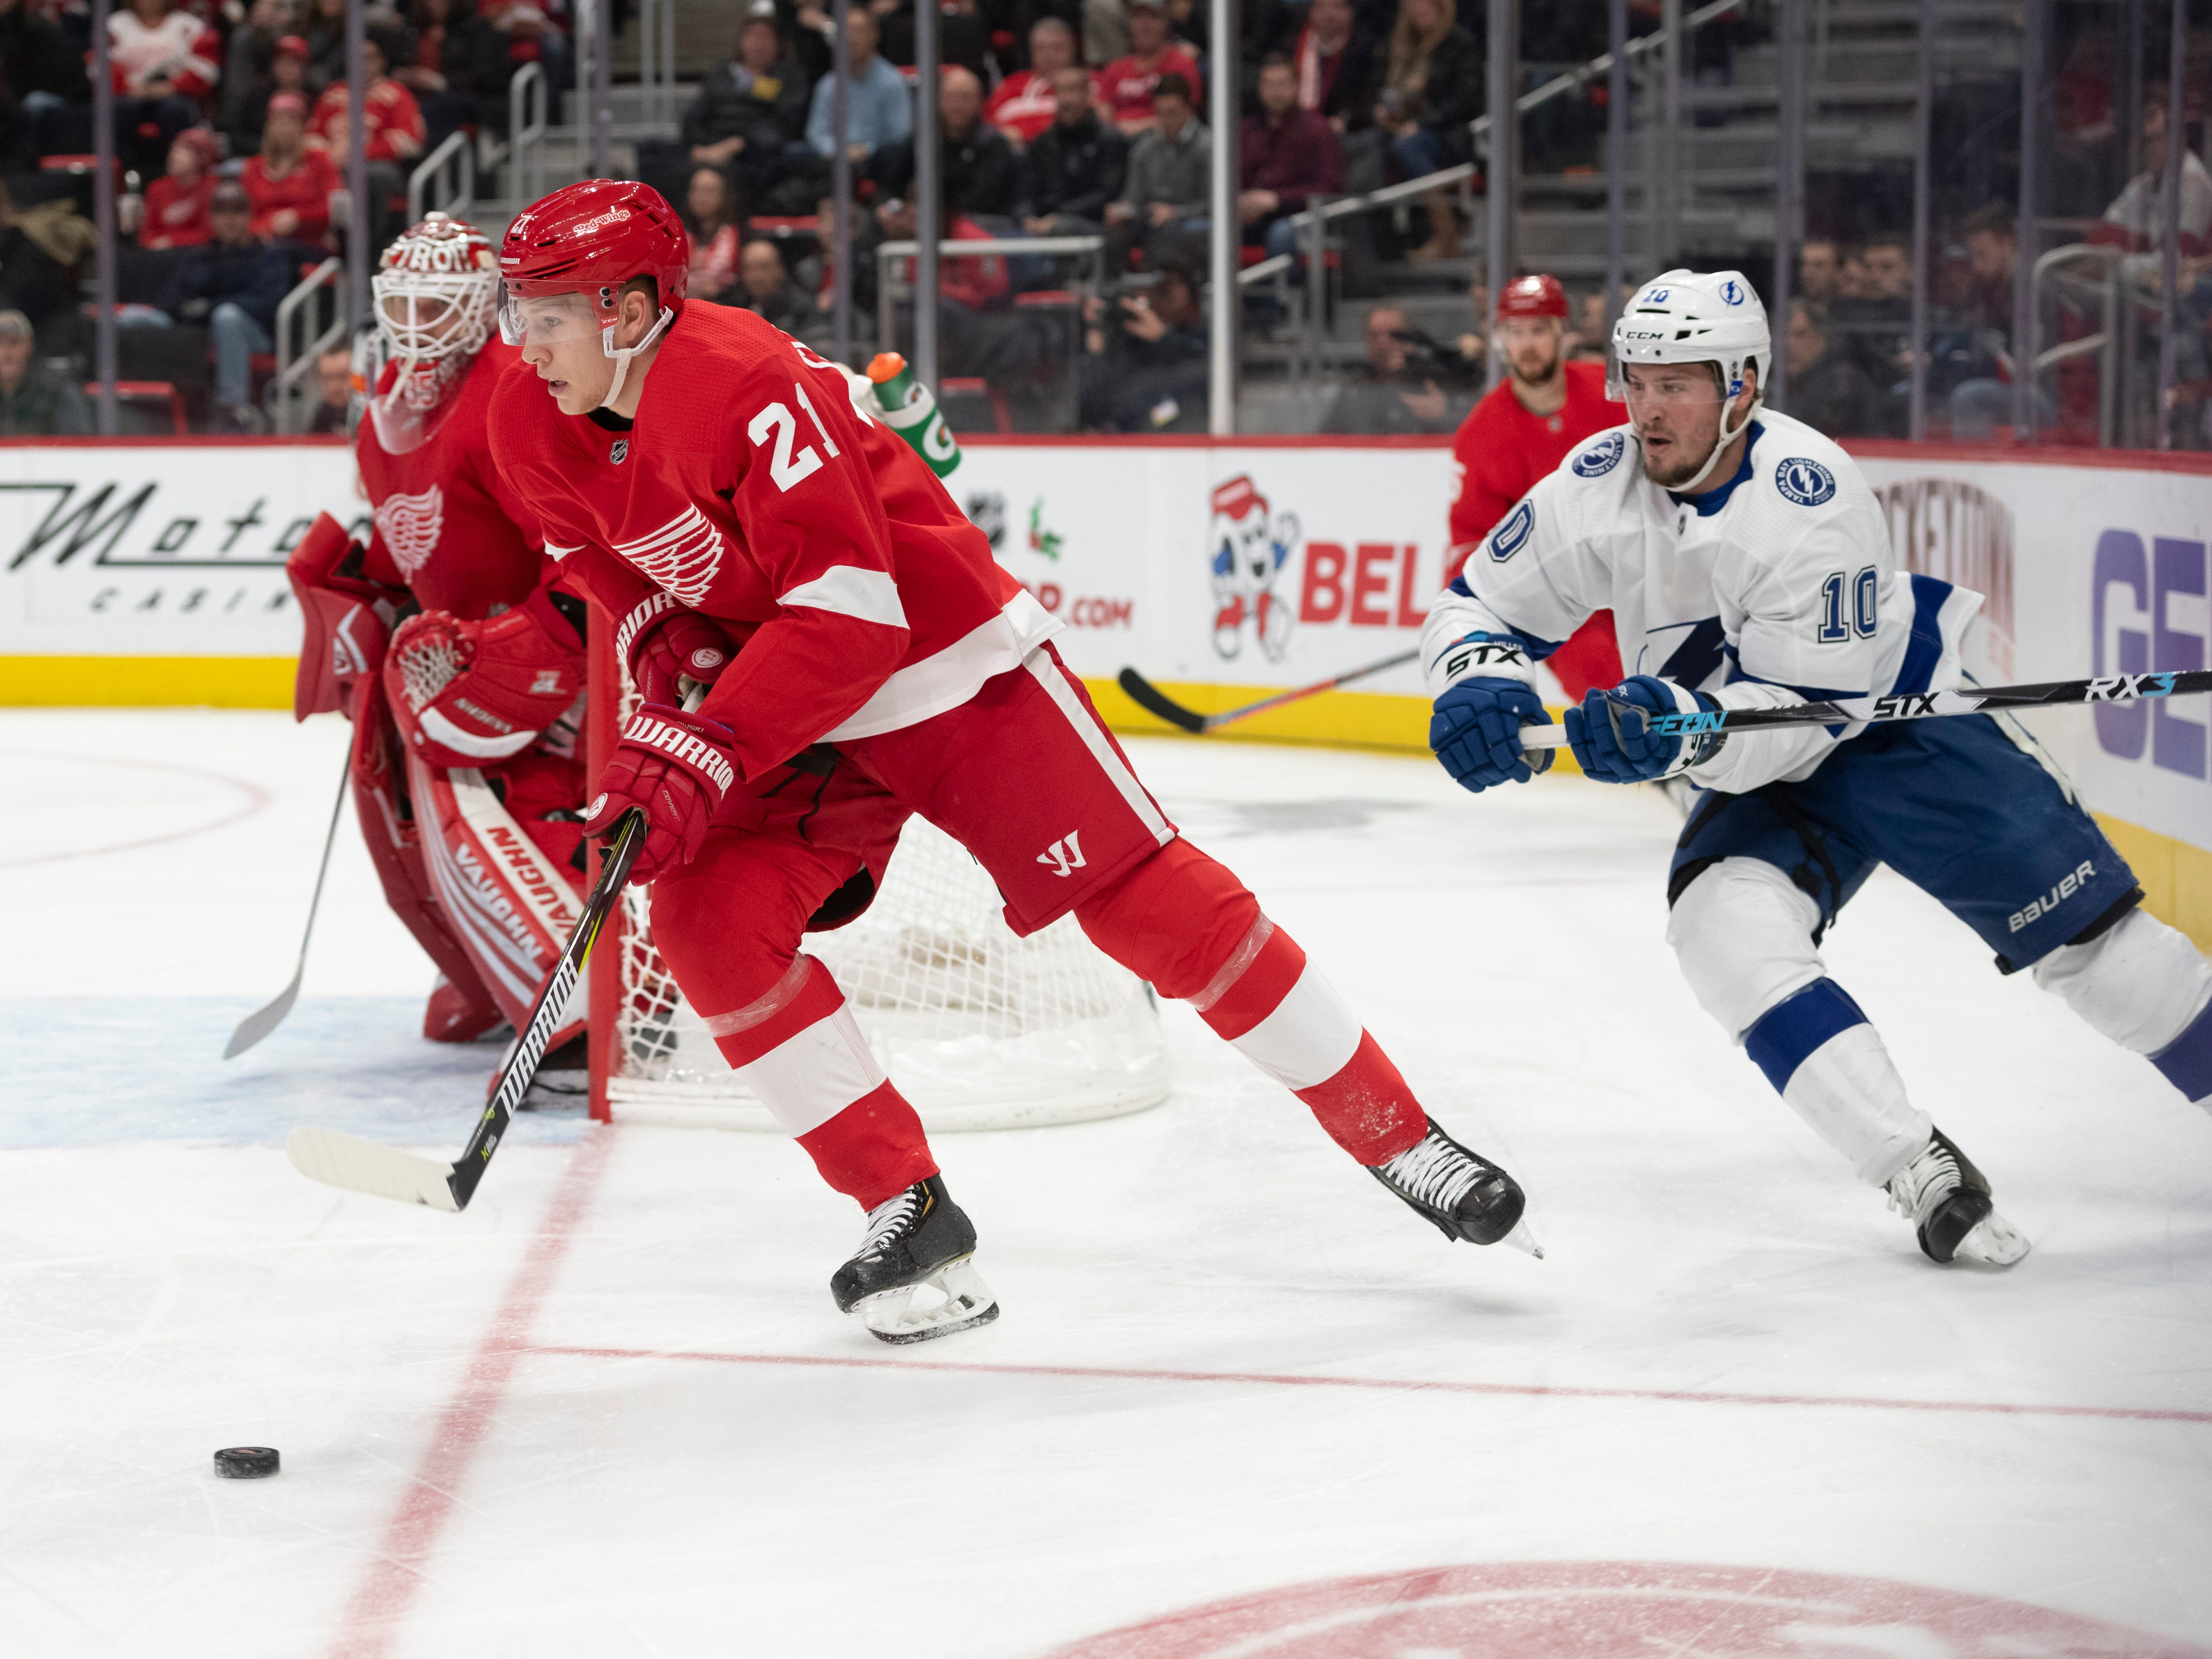 Detroit defenseman Dennis Cholowski keeps the puck away from Tampa Bay center J.T. Miller in the second period.